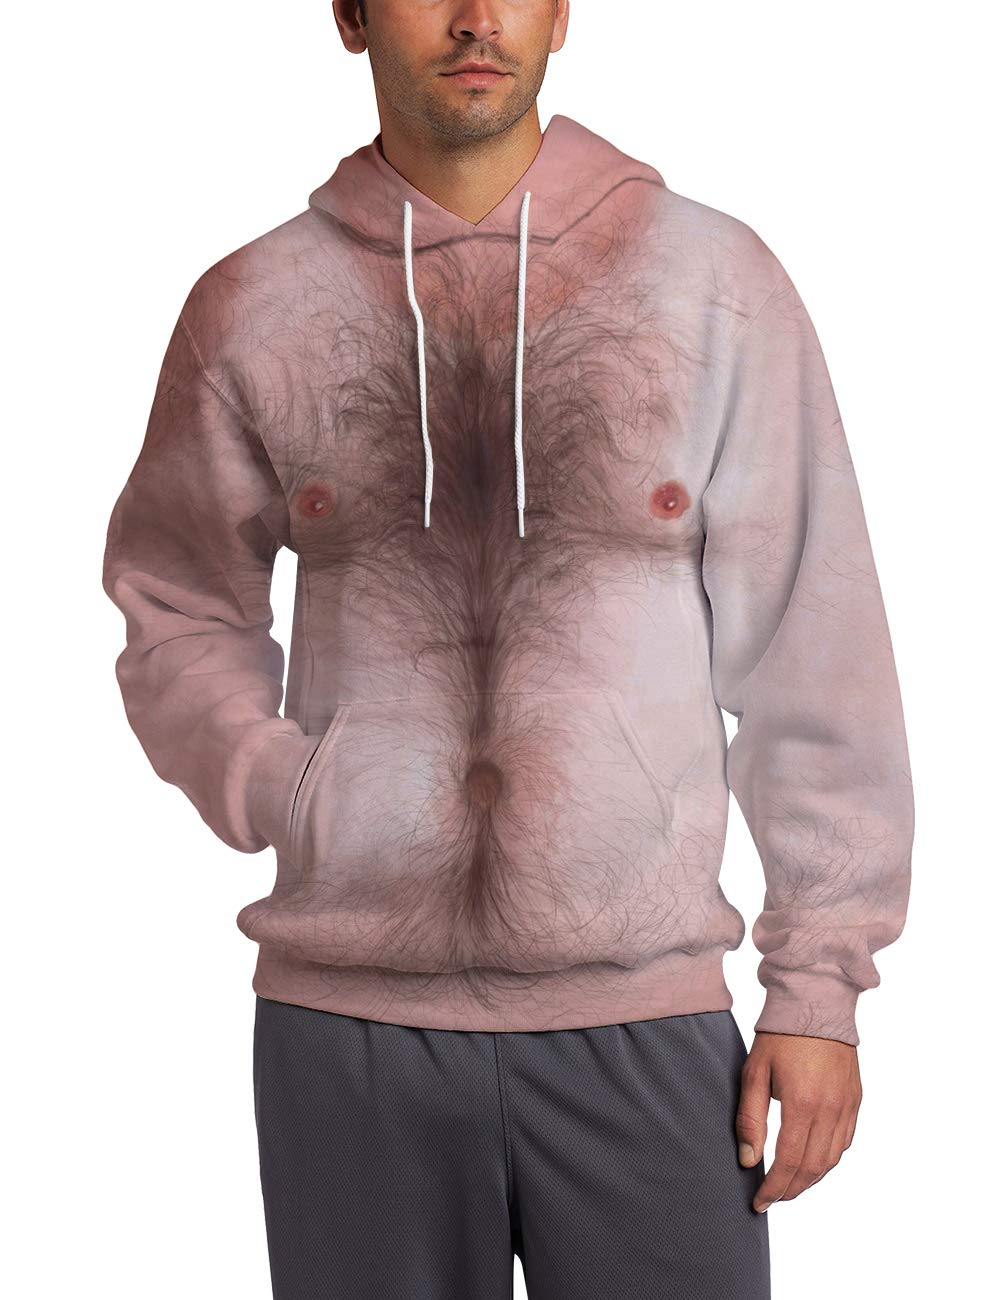 Leapparel Unisex Pullover Colorful 3D Hoodie Galaxy Sweatshirt for Men and Women Cool Graphic Prints Sweater with Big Pocket (Large/X-Large, Chest Hair-Pink)